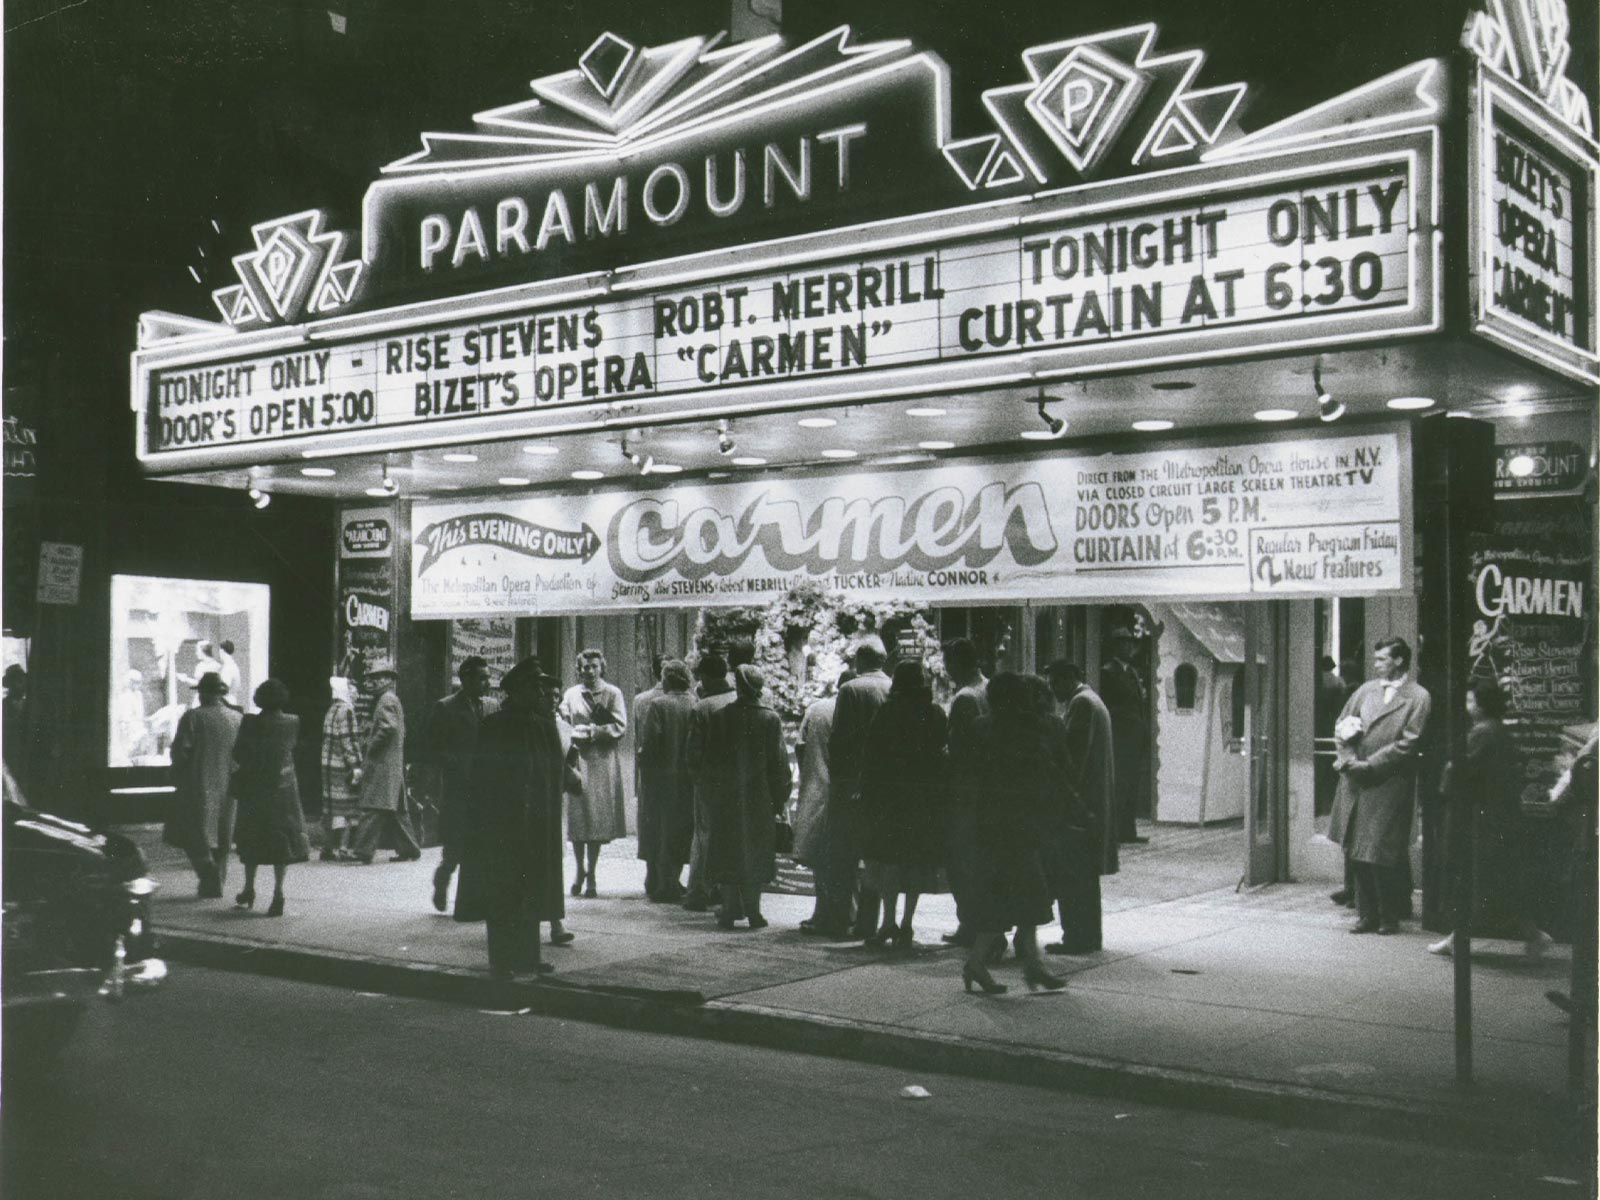 1952.12.11 Carmen telecast move theater marquee.jpg